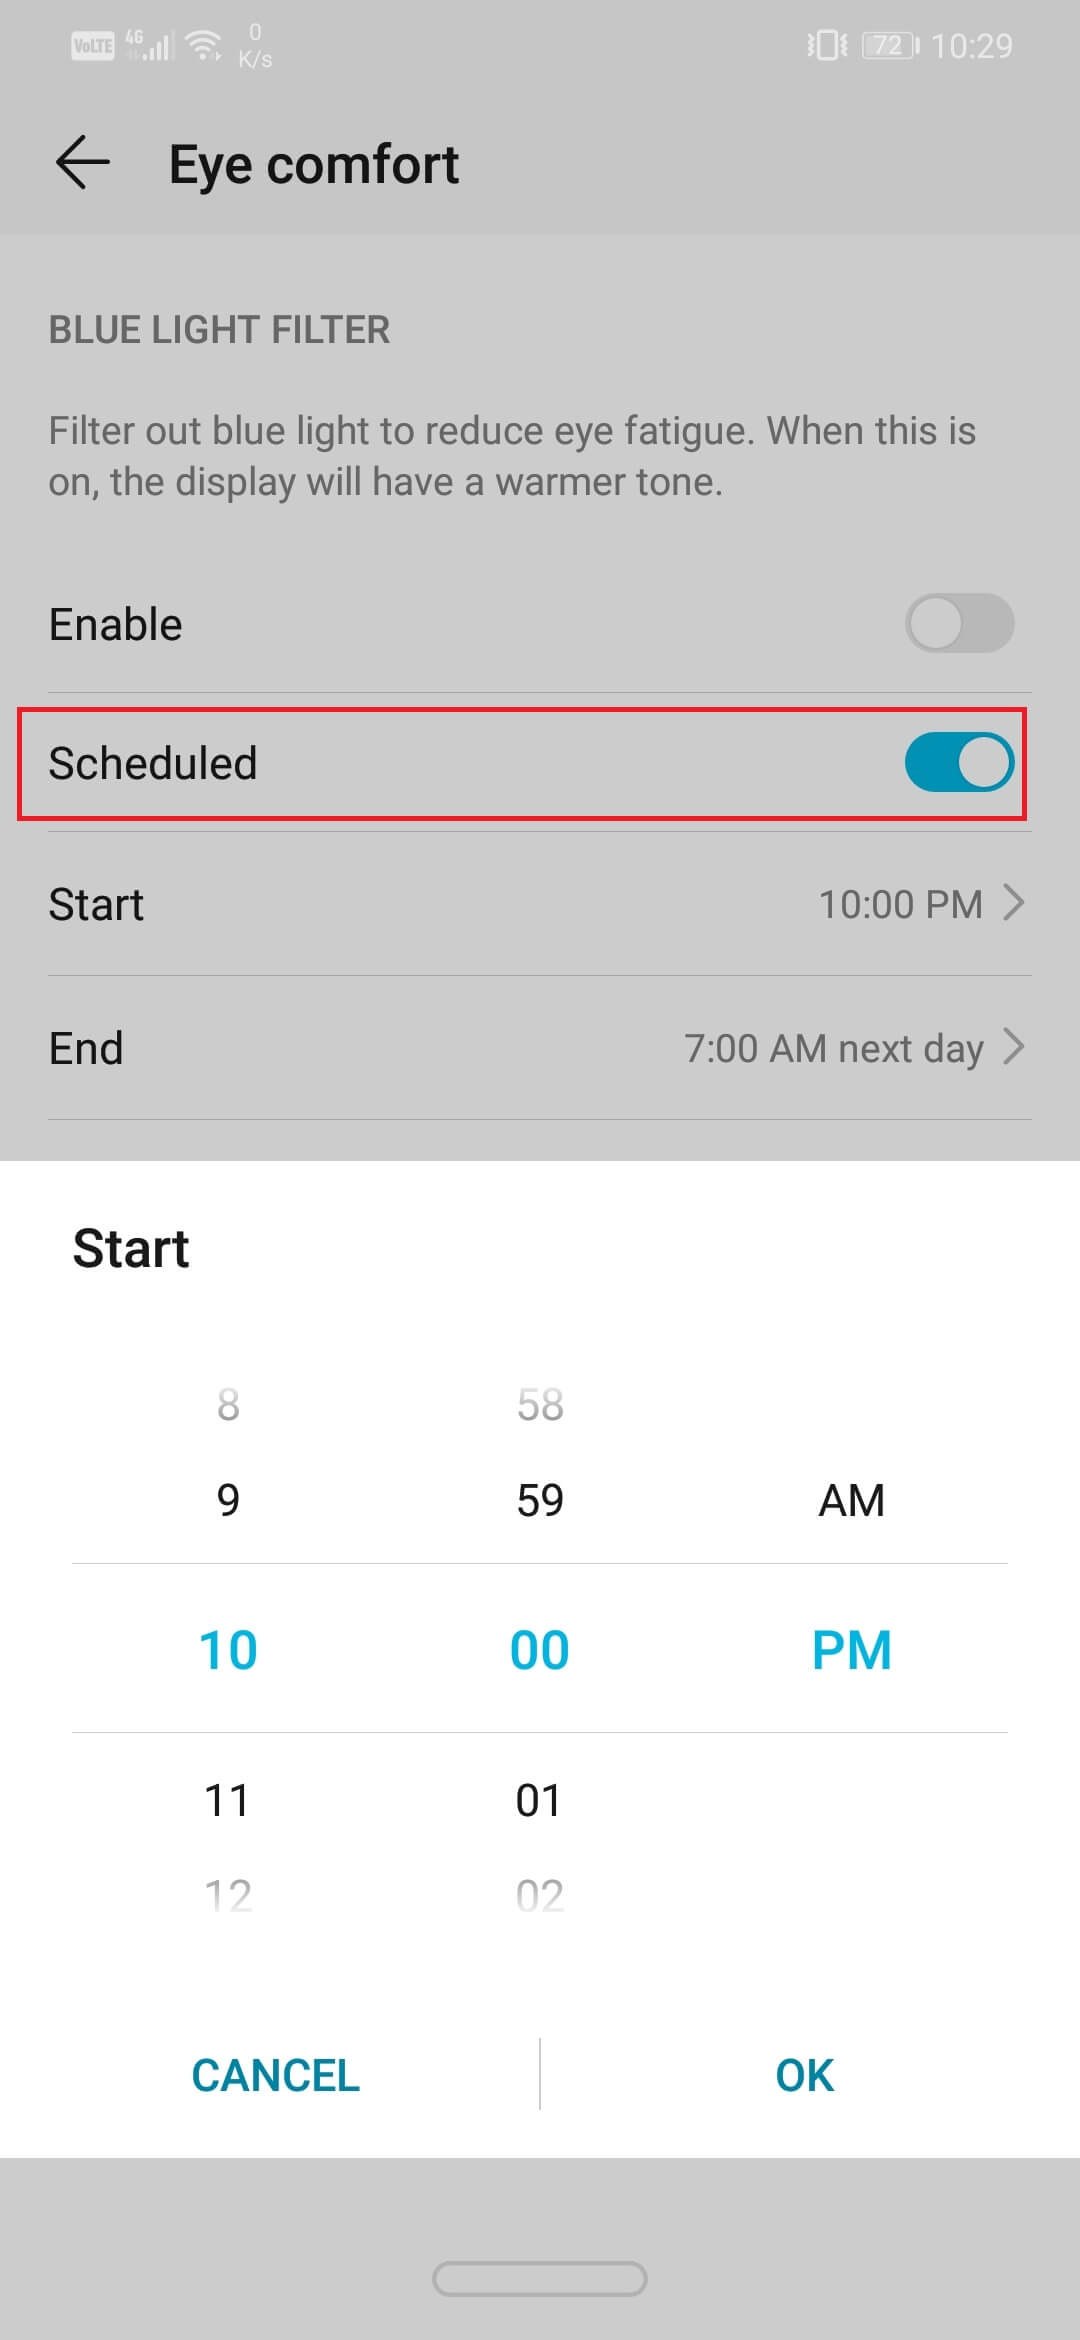 enable the toggle switch next to the Scheduled option.